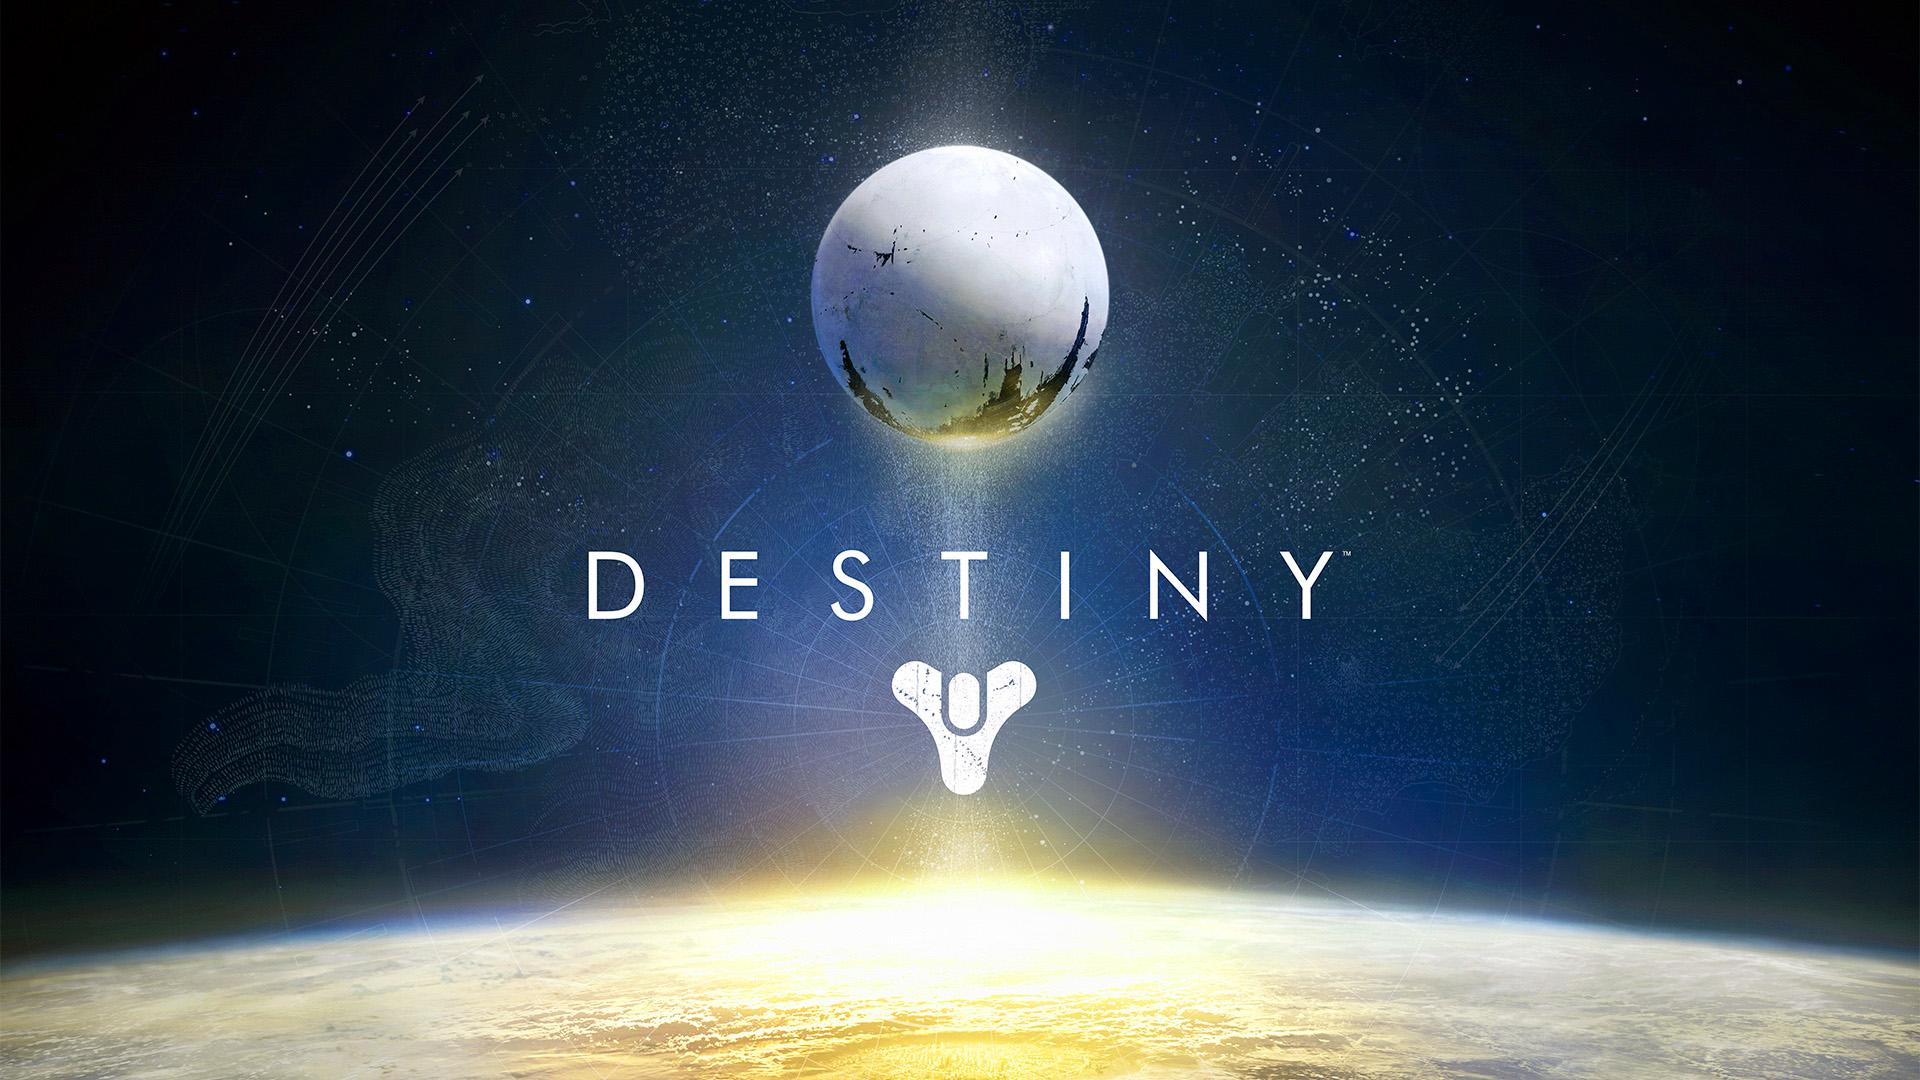 wallpaper destiny A3